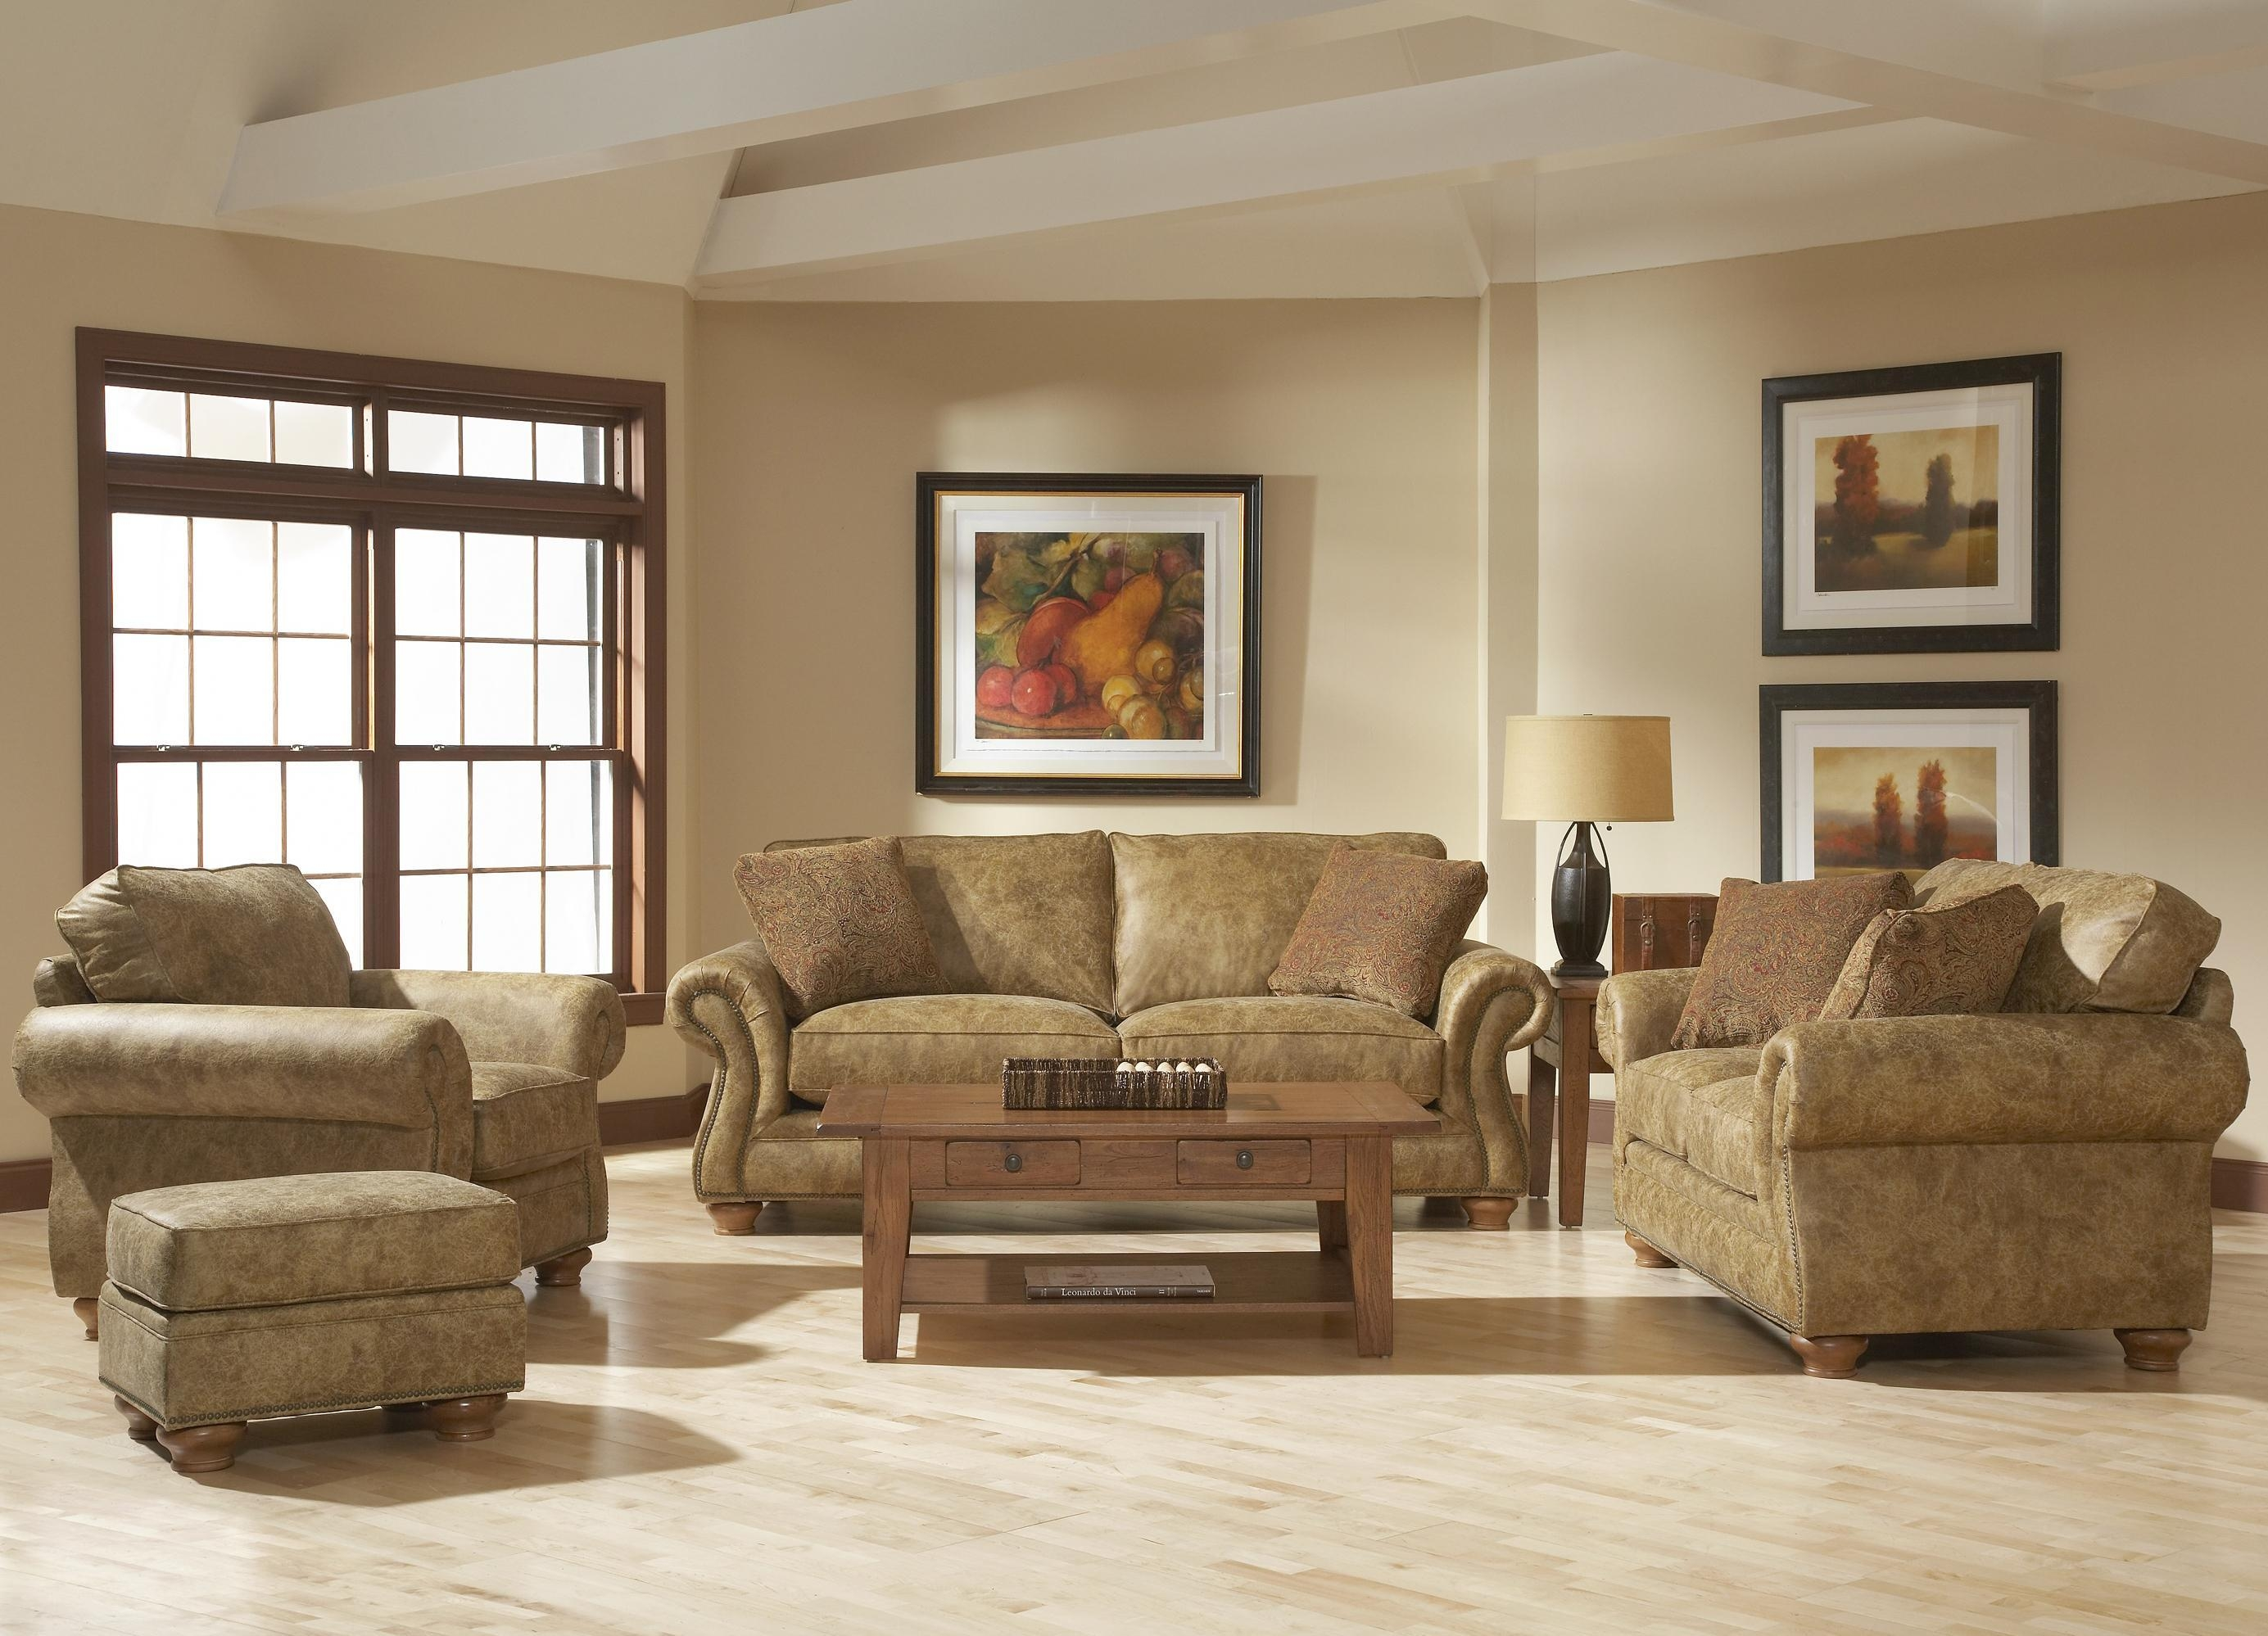 Broyhill Furniture Laramie 2 Piece Corner Sectional Sofa – Wayside Intended For Broyhill Sofas (Image 7 of 20)